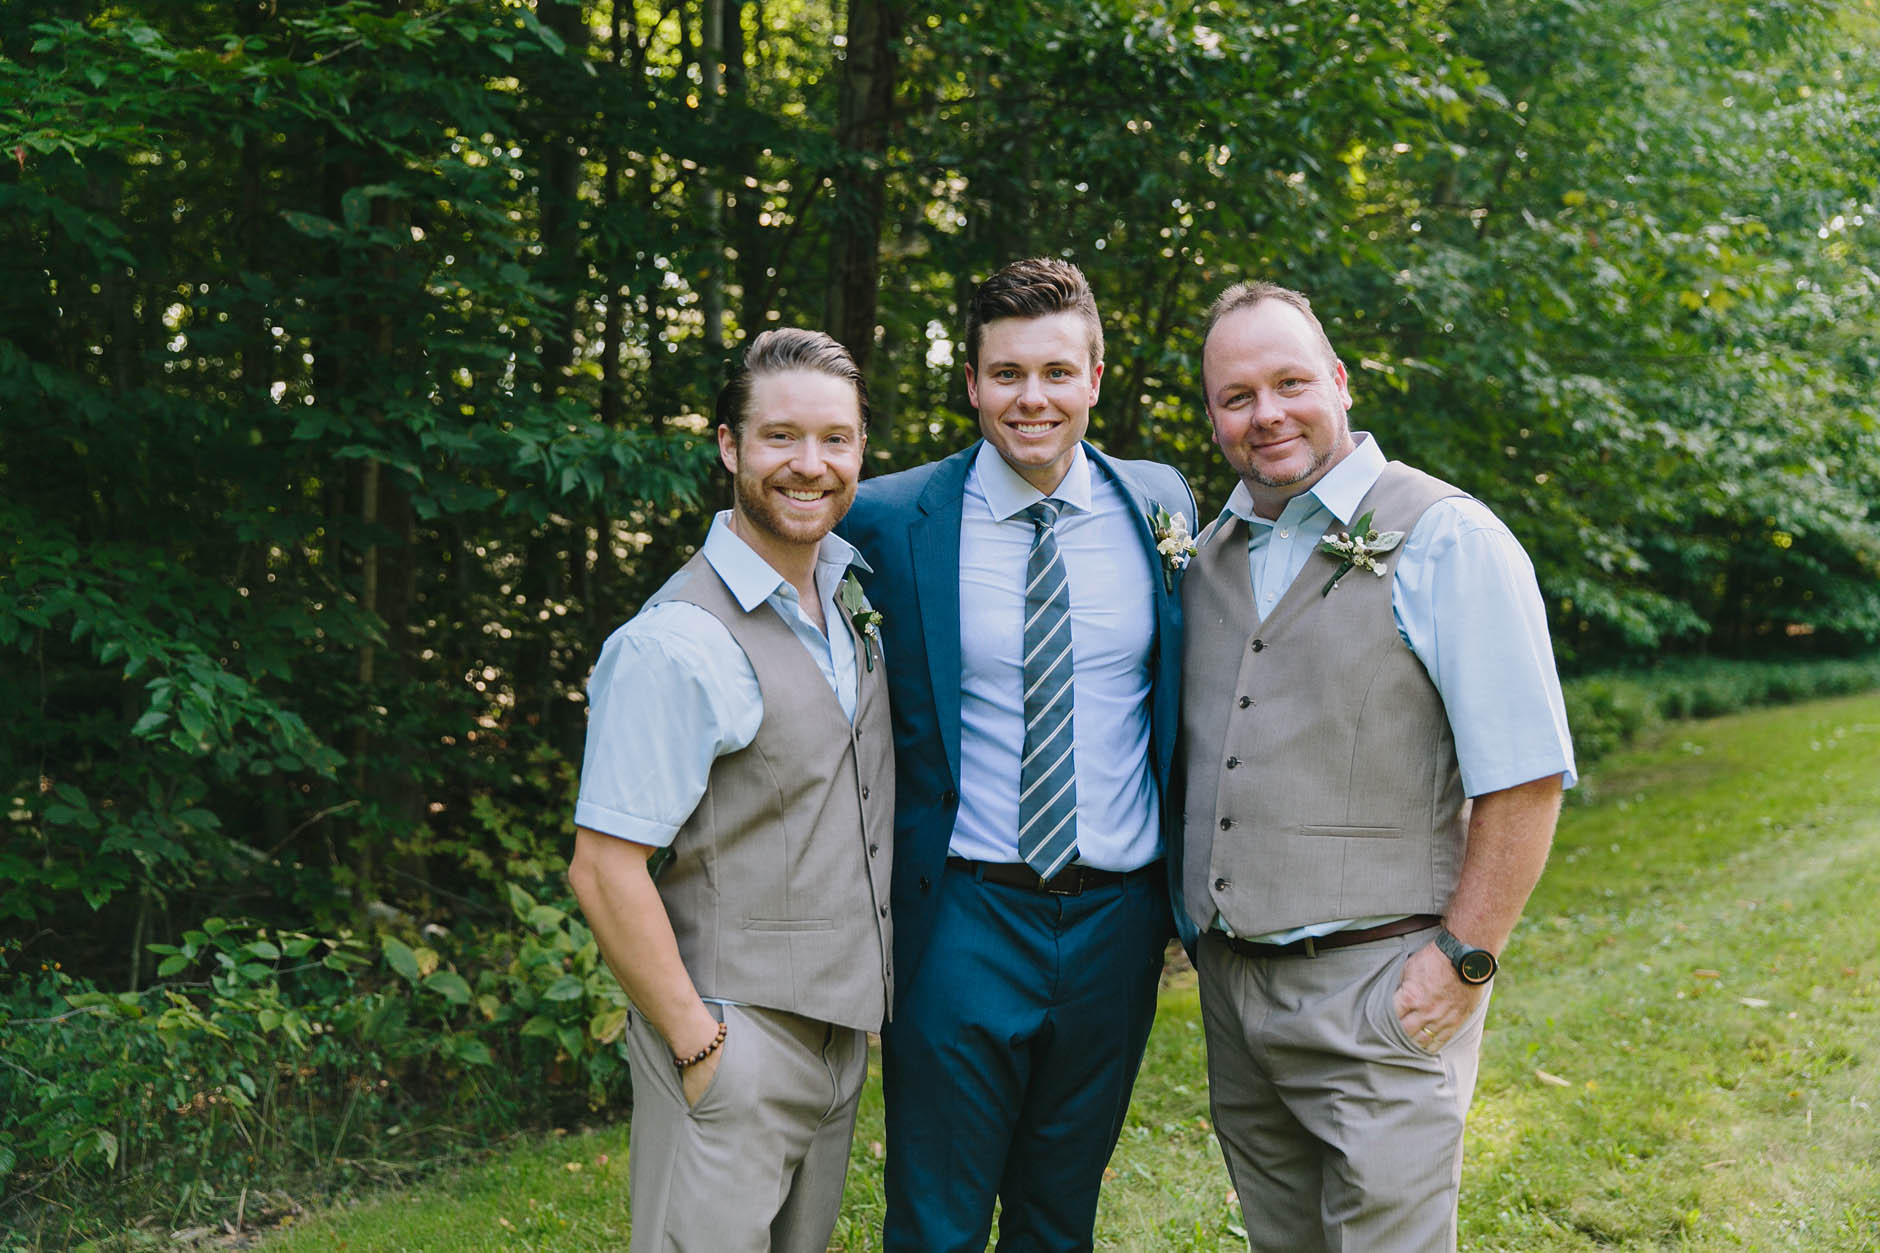 A backyard country wedding in Garrettsville near Cleveland with Jenna & Robert. All photos created by Maria Sharp Photography. To view more please visit, http://www.mariacsharp.com/